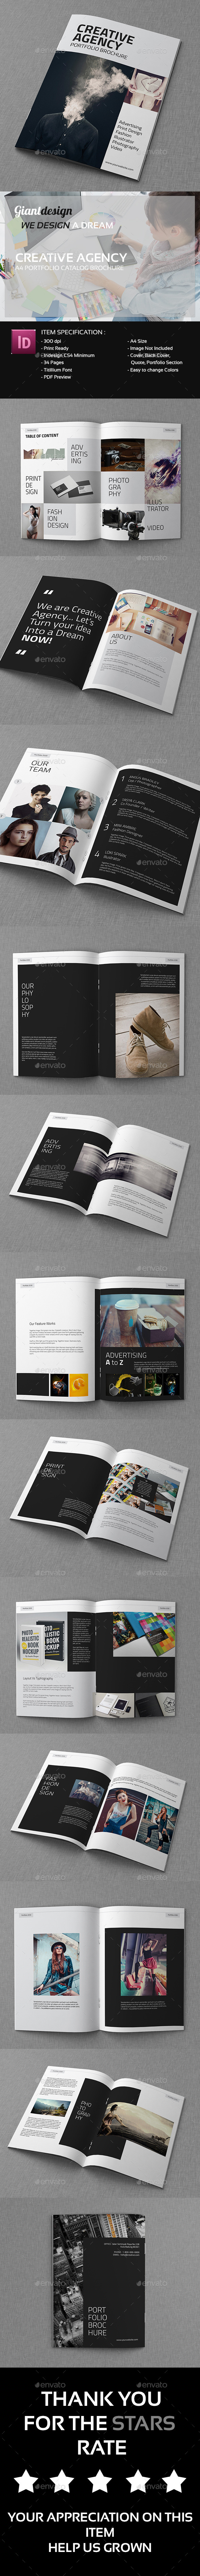 GraphicRiver Creative Agency A4 Portfolio Catalog Brochure 10273249